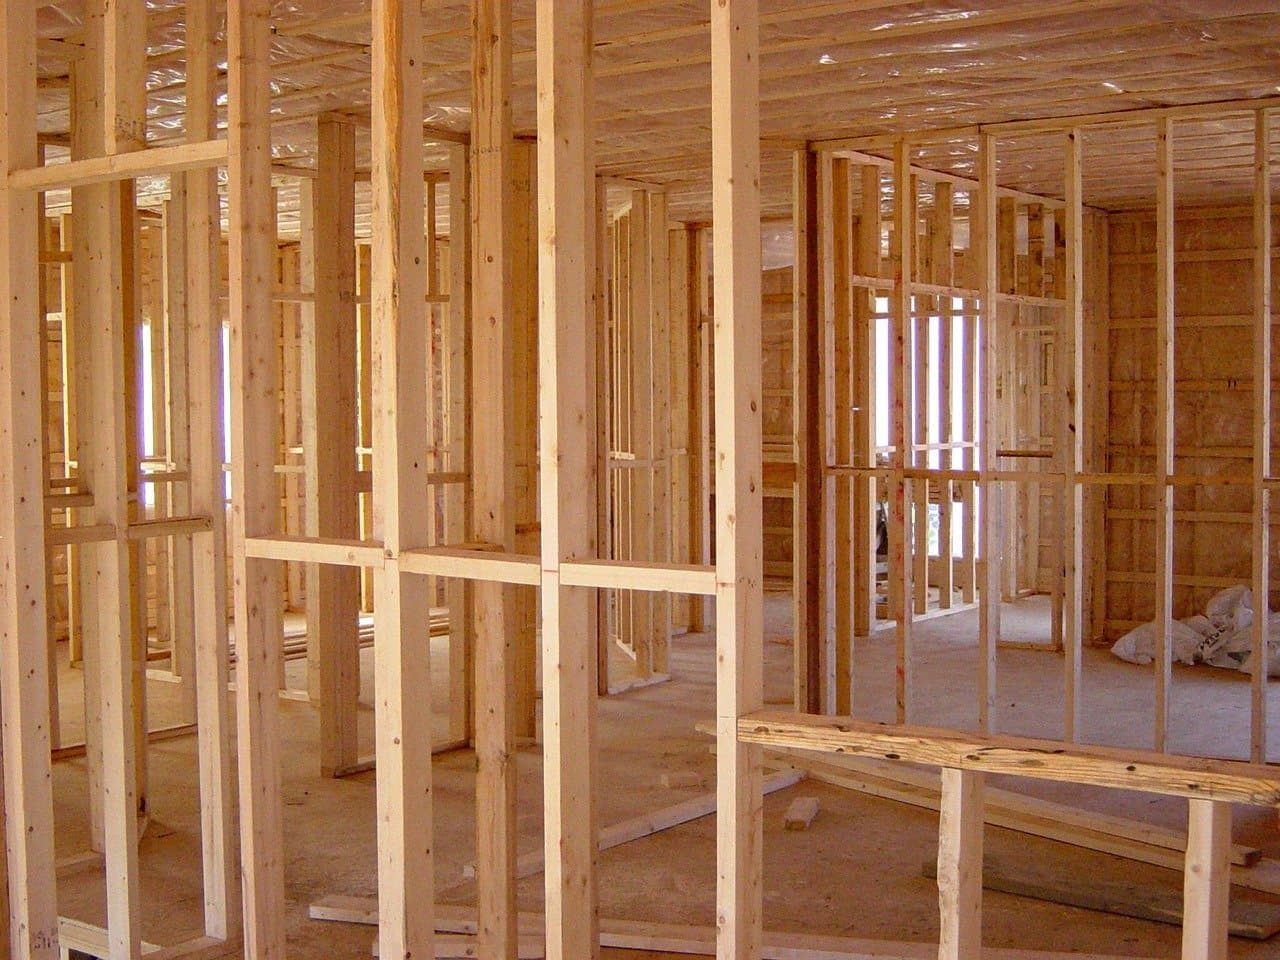 Five Ways to Build Your Home Renovation Business from Home